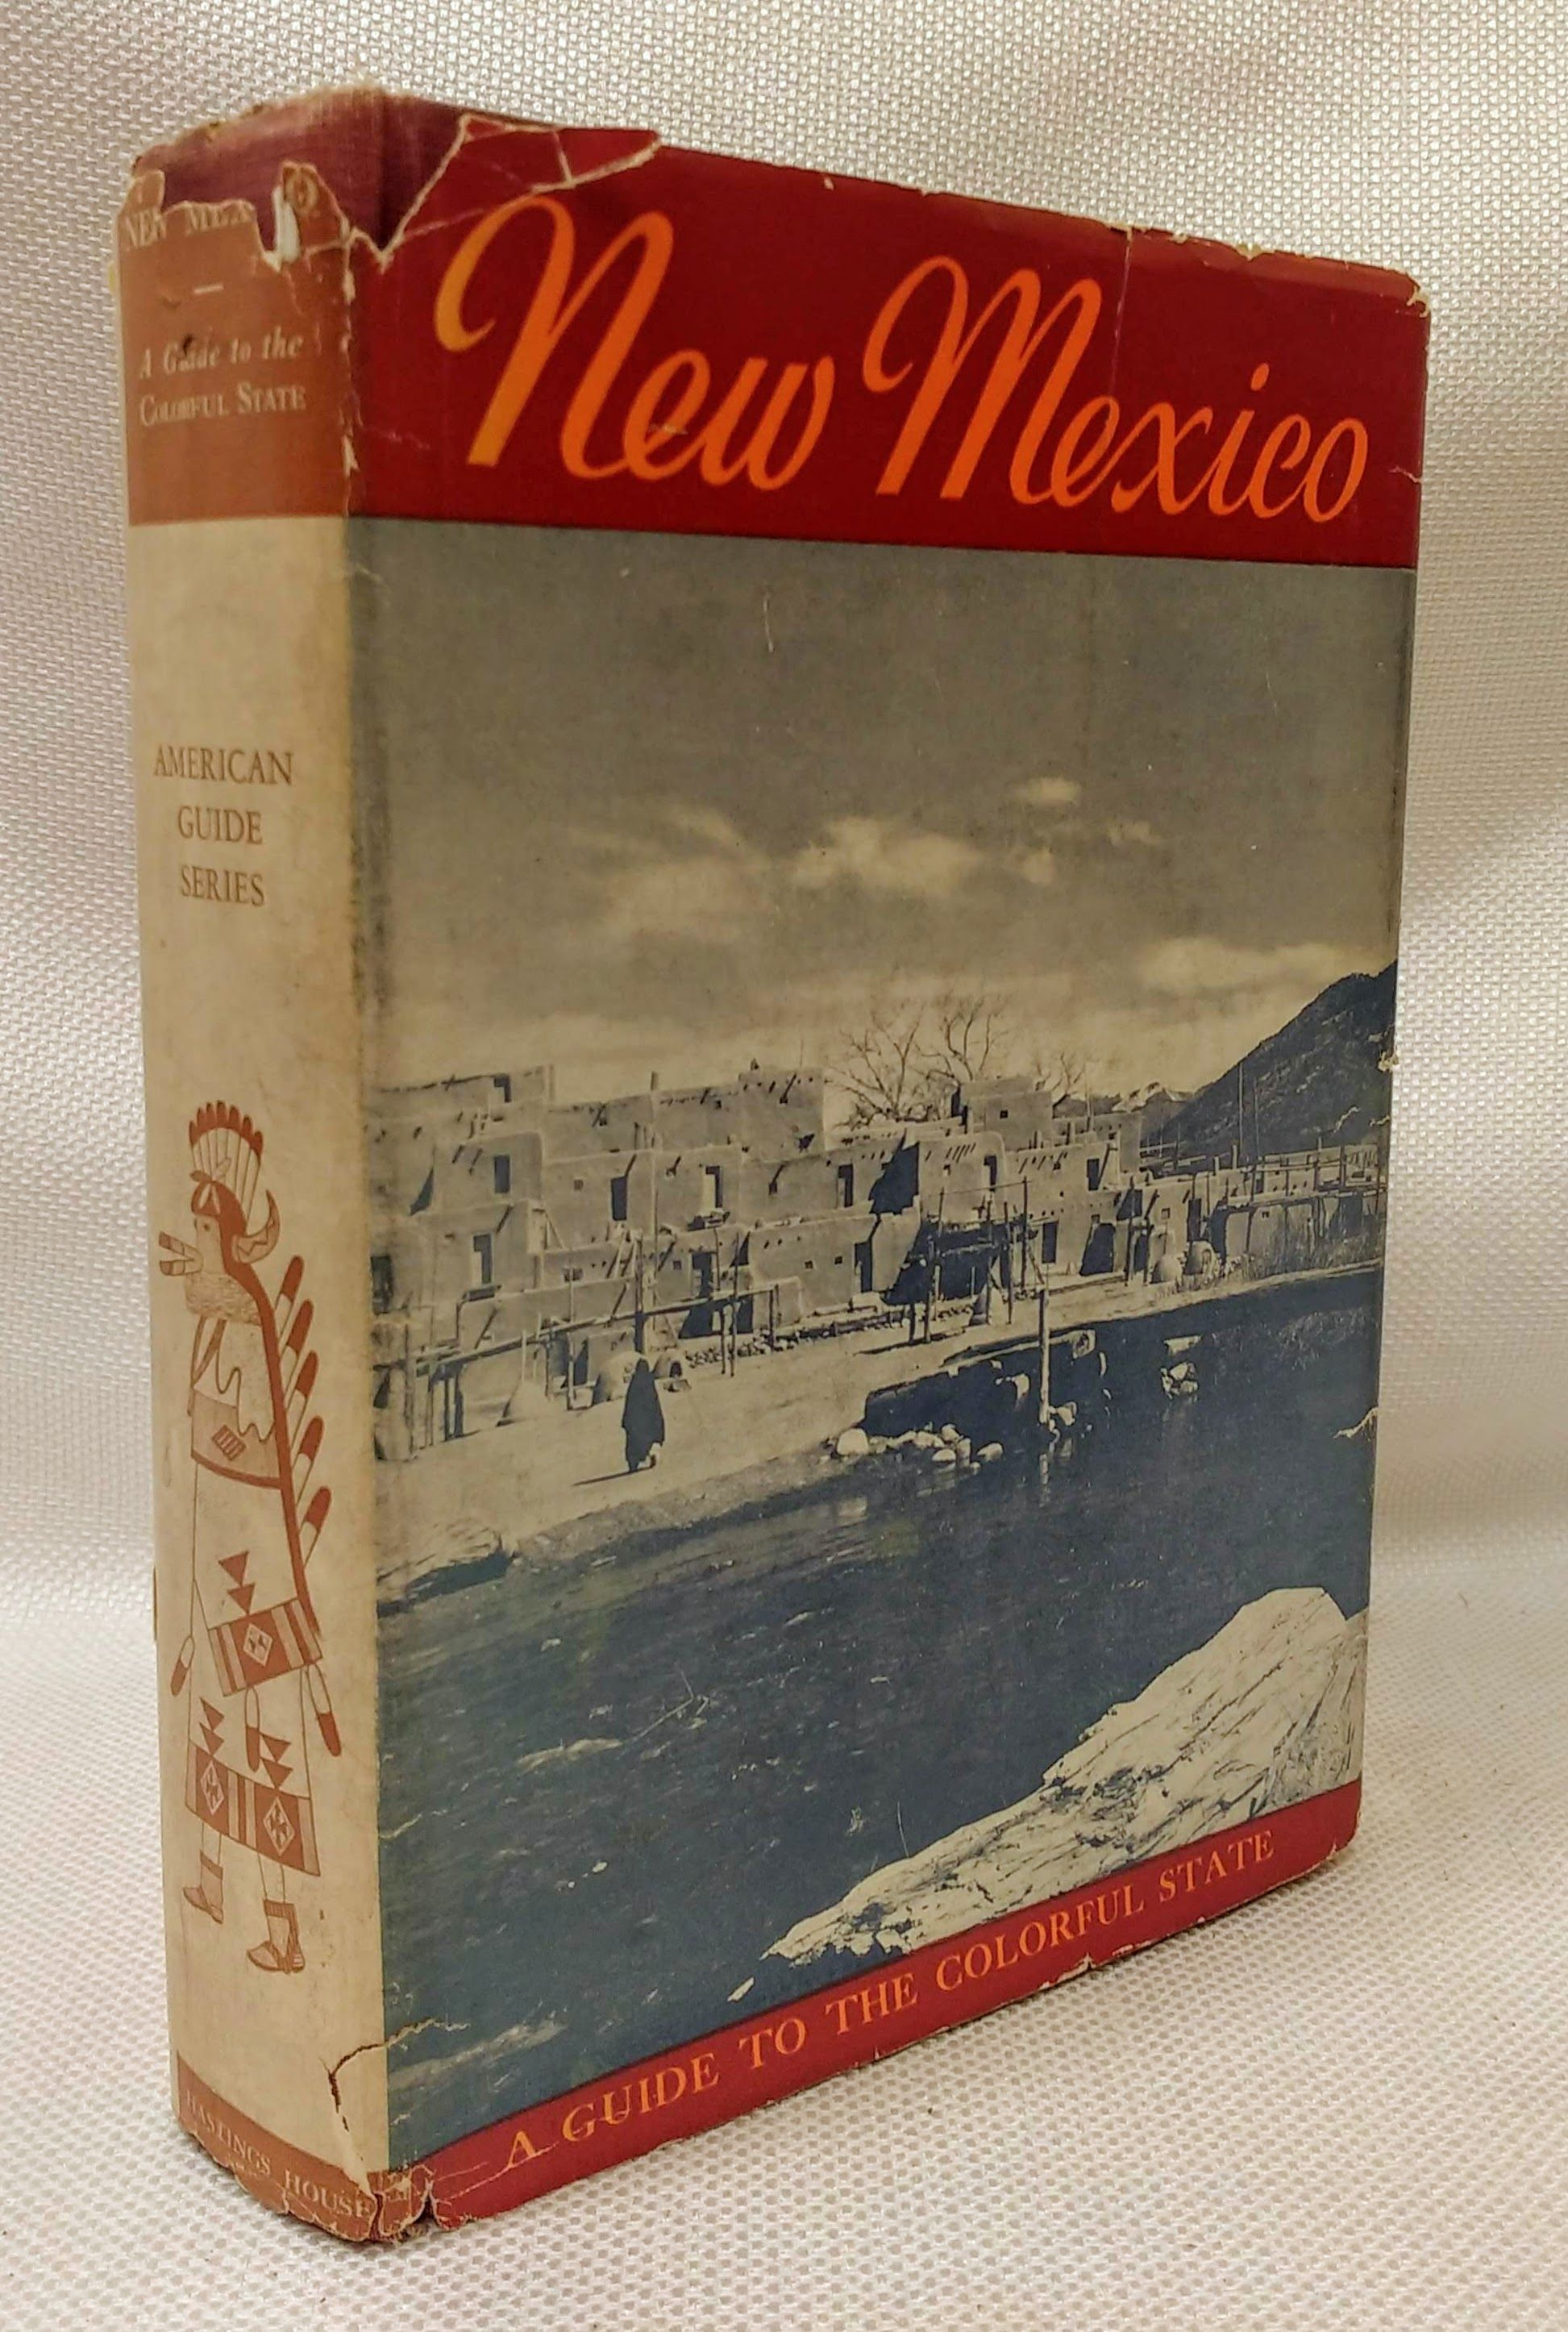 New Mexico: A Guide to the Colorful State, WPA, American Guide Series